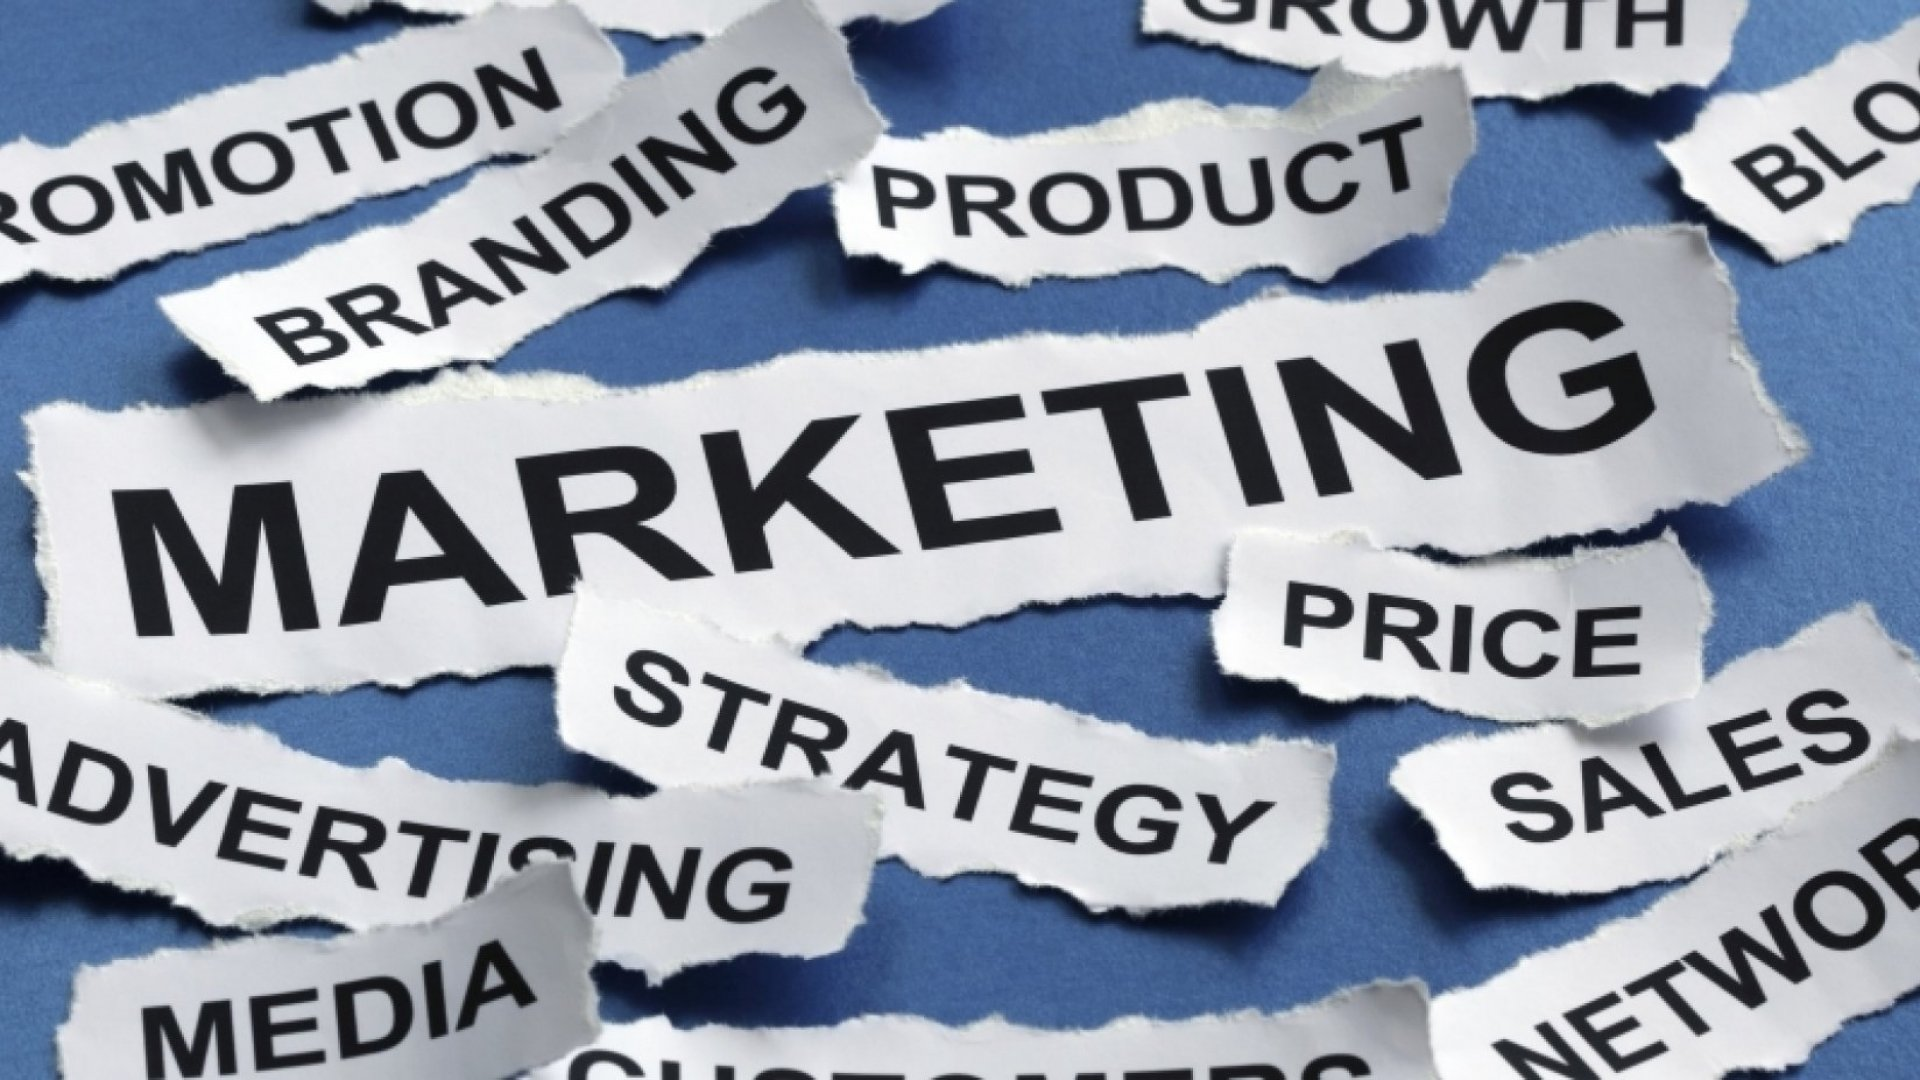 3 Strategies for Building a Successful Marketing Team